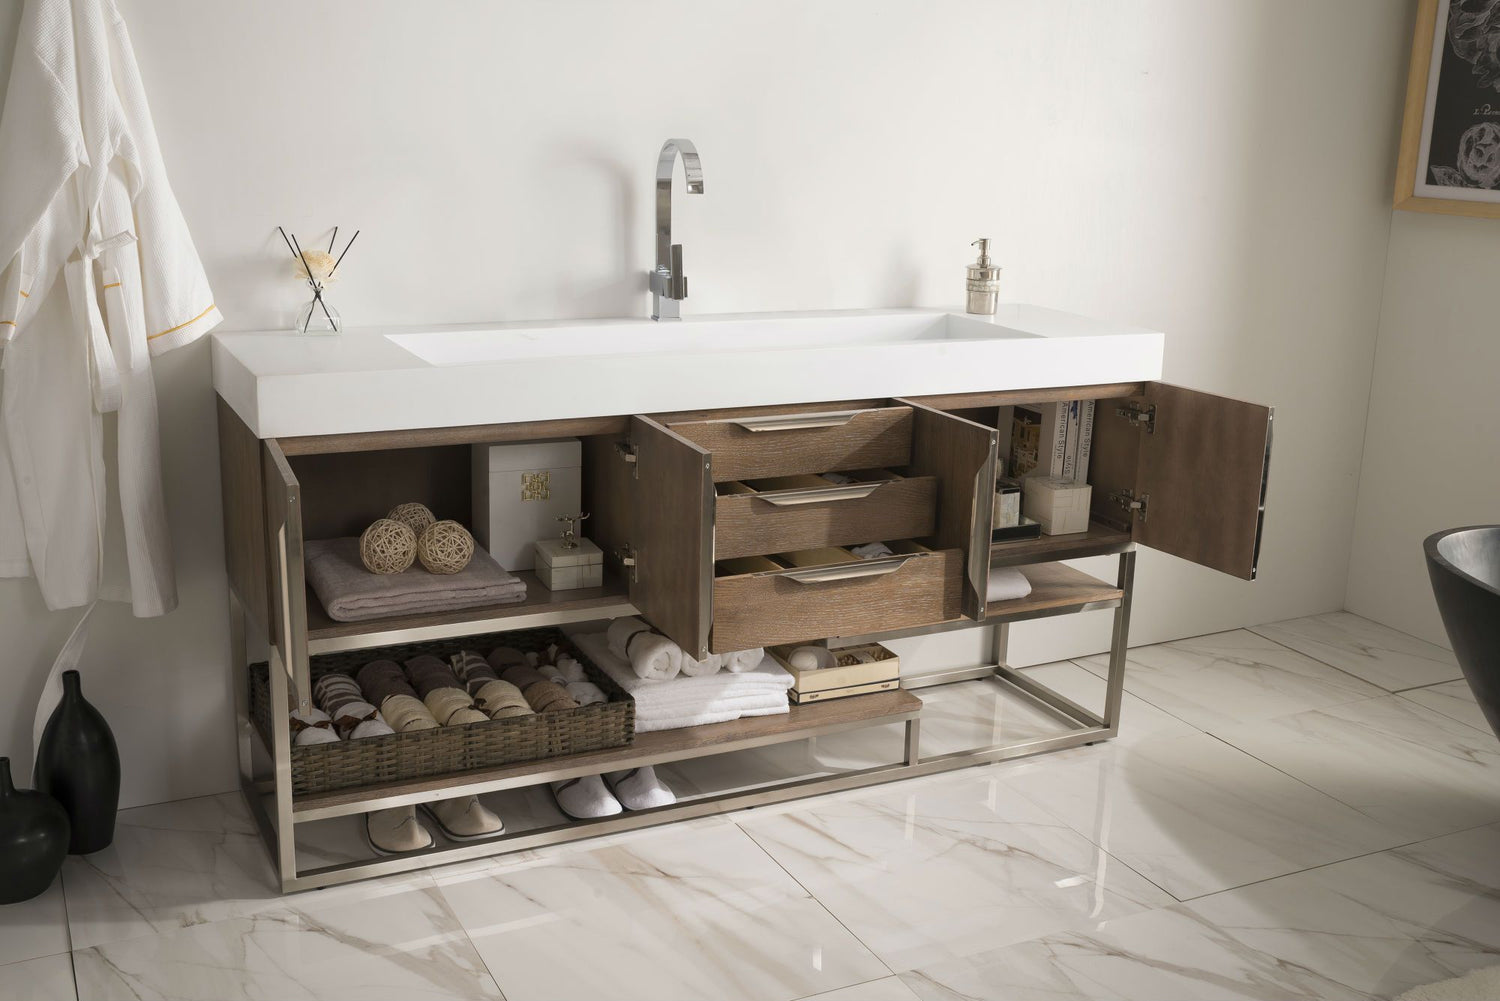 72 columbia latte oak single sink bathroom vanity - 72 inch single sink bathroom vanity ...